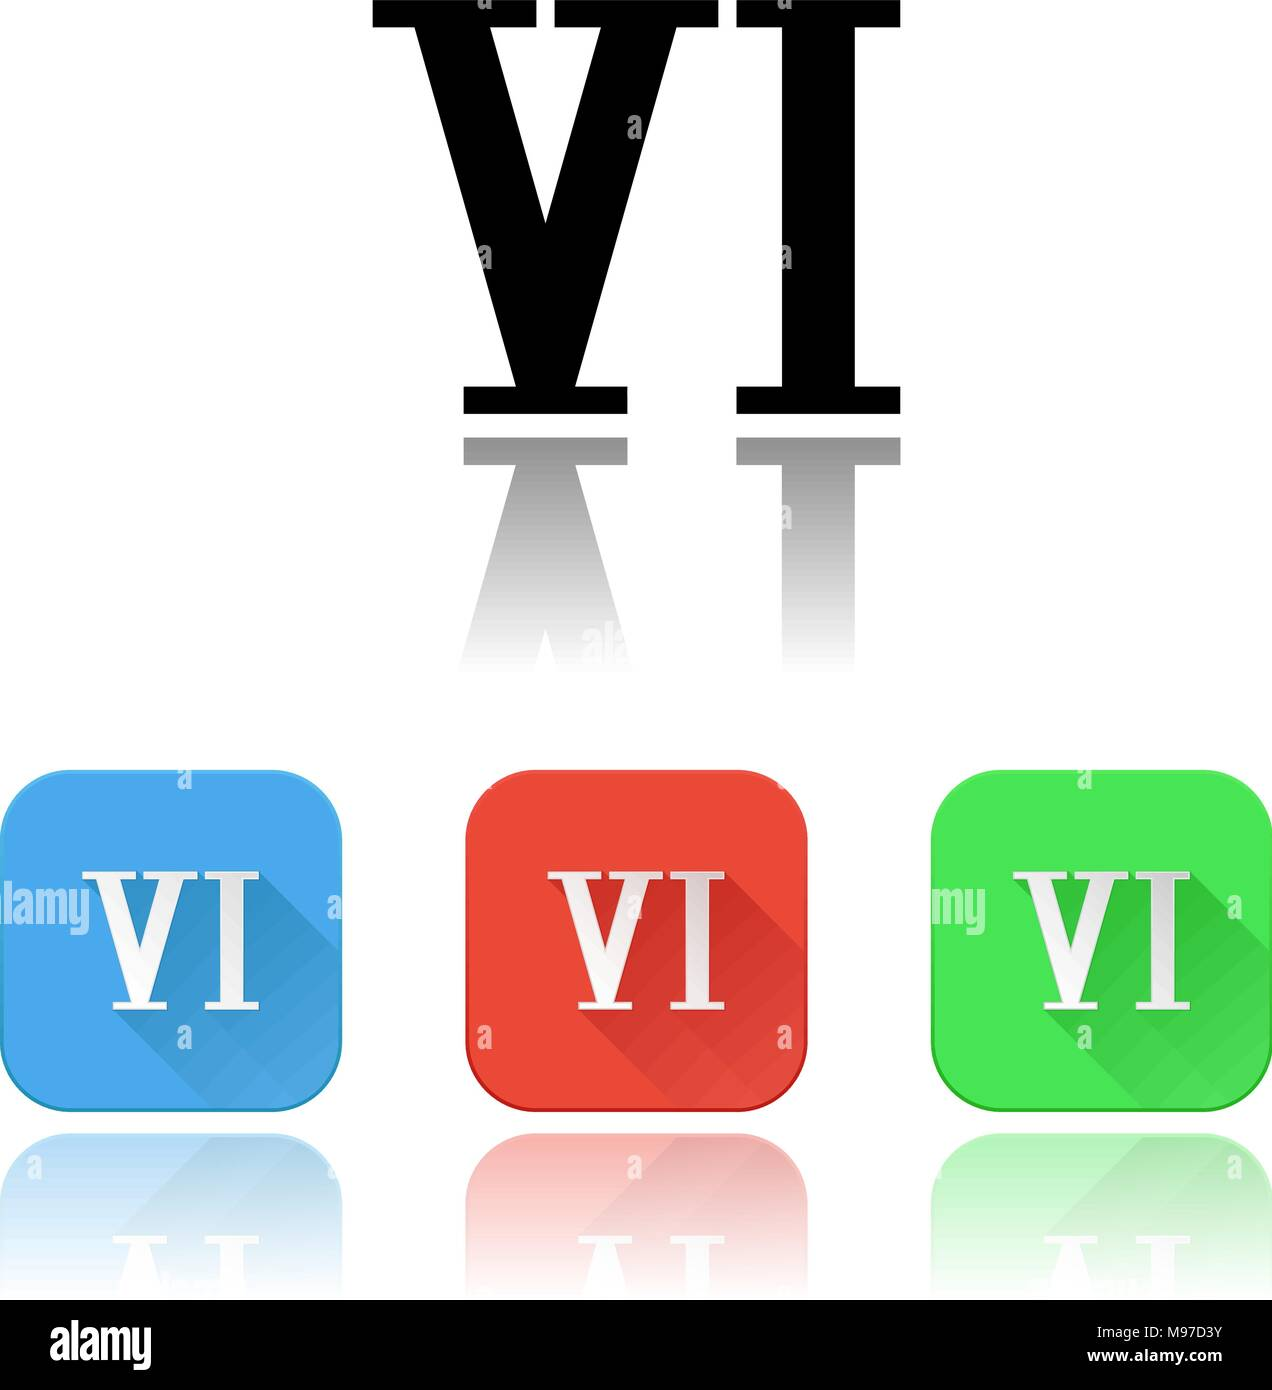 VI roman numeral icons. Colored set with reflection - Stock Image